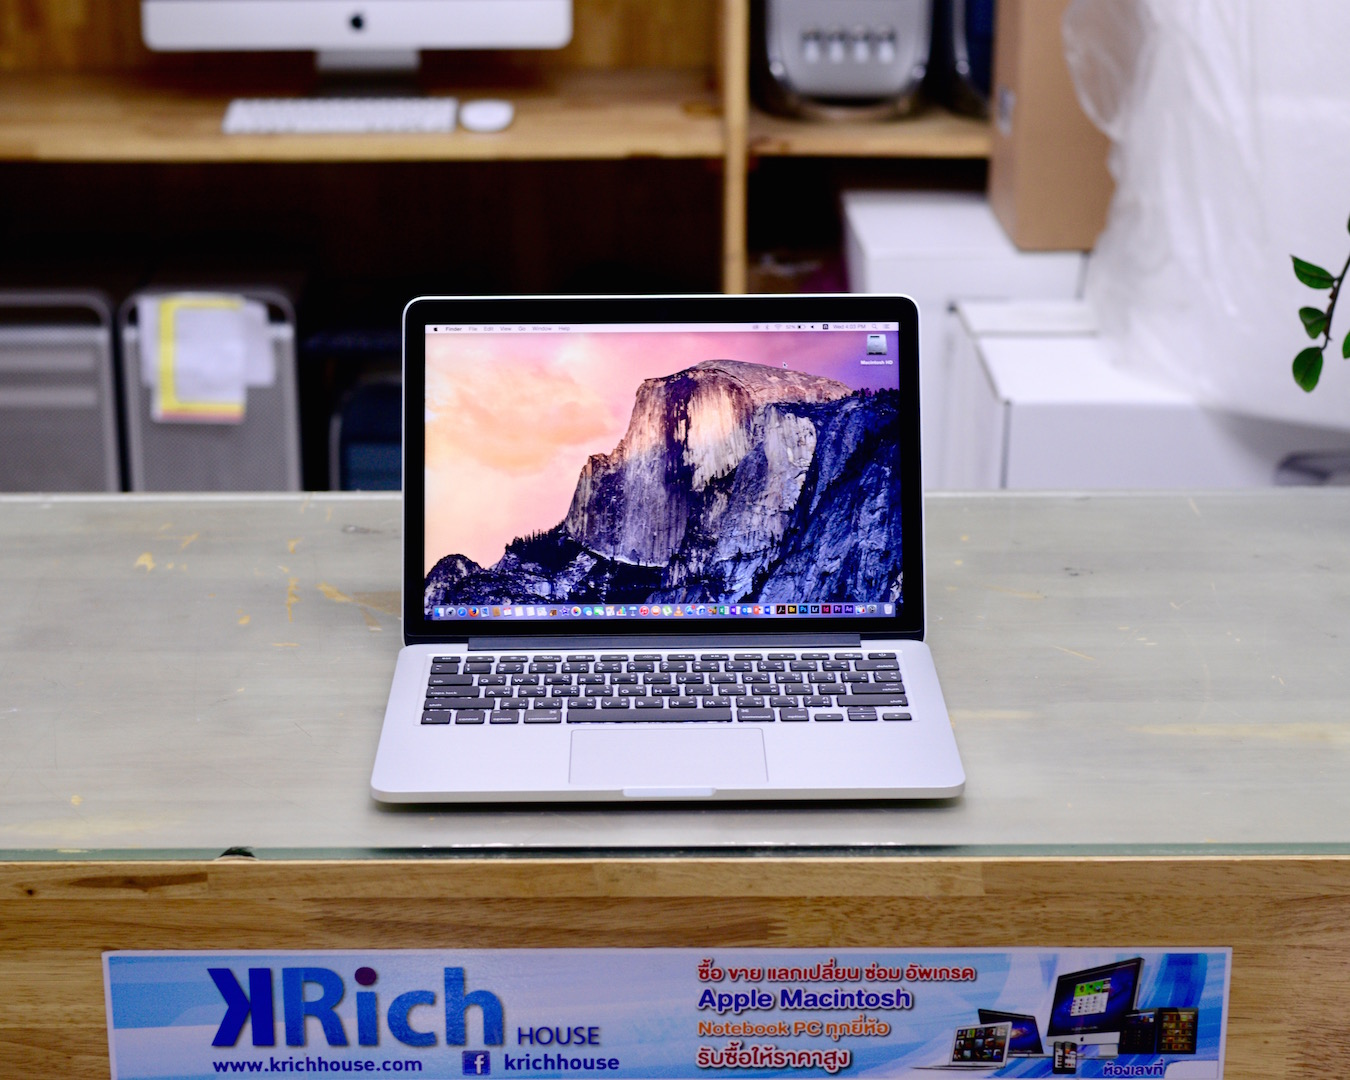 TOP Model Eeary 2015 MacBook Pro Retina 13-inch Core i5 2.9GHz RAM 8GB SSD 512 GB NEW Battery Cycle Count 0